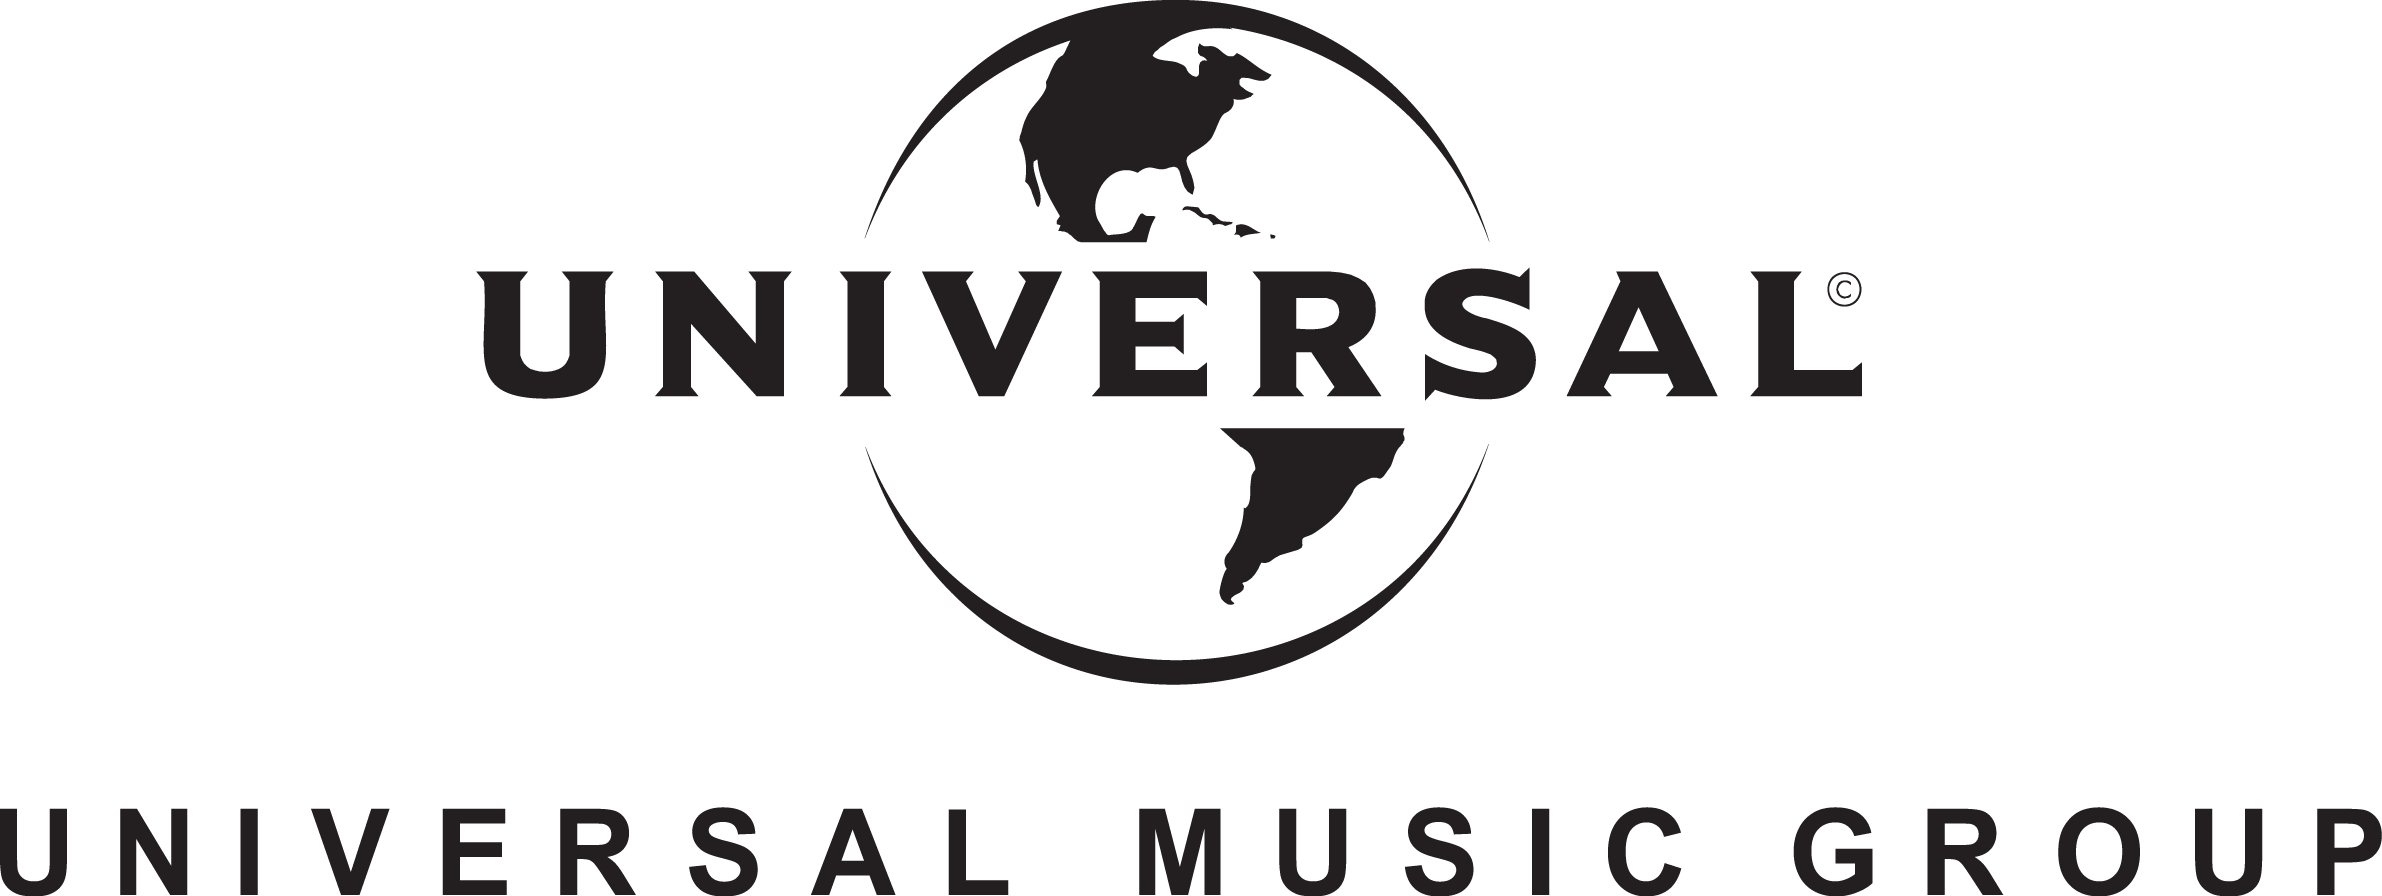 UNIVERSAL_MUSIC_GROUP-copy1